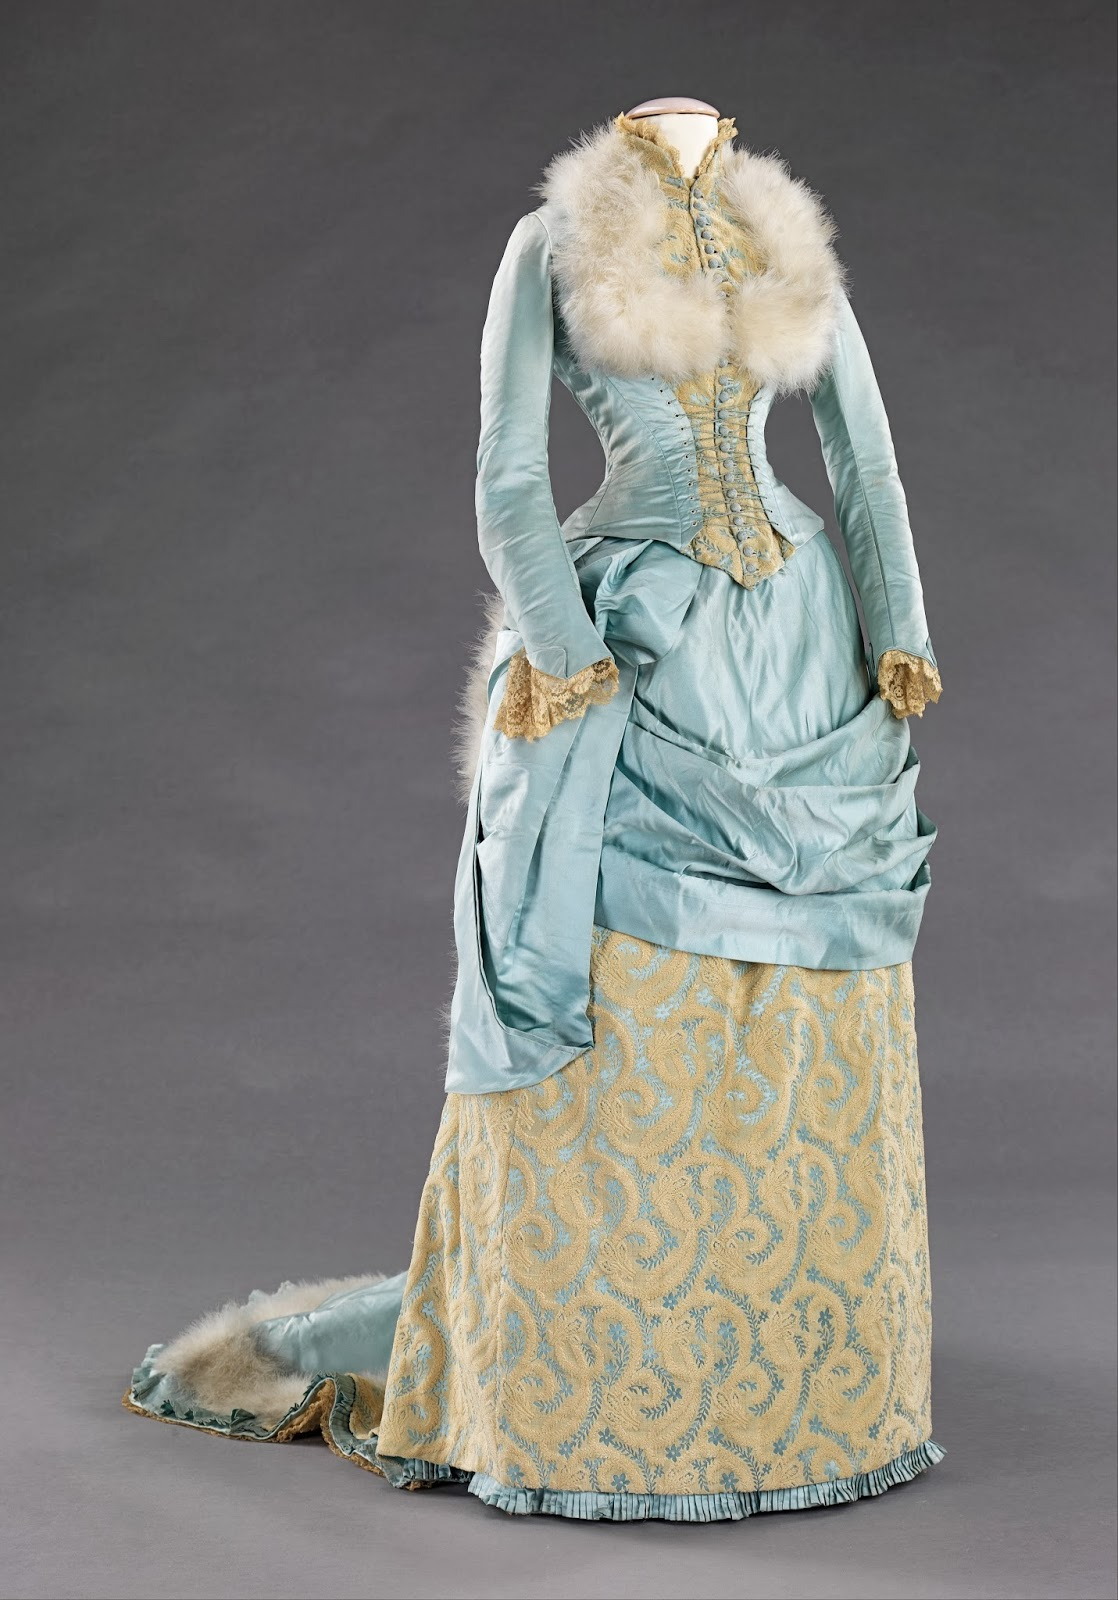 SilkDamask : Icy Blue Silk & Feathers: Two Wintery Victorian ...